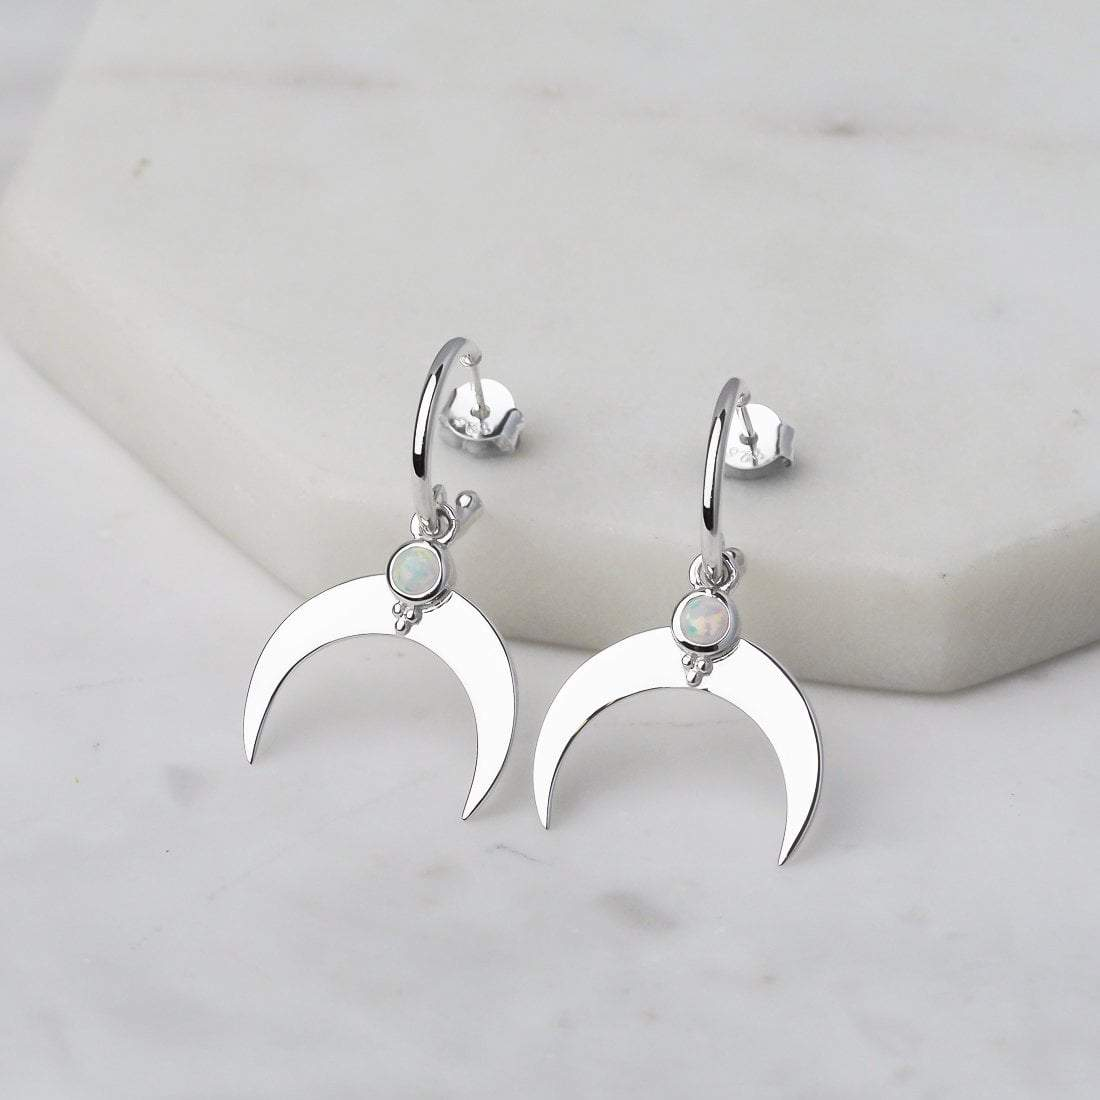 Midsummer Star Earrings Ascending Crescent Earrings